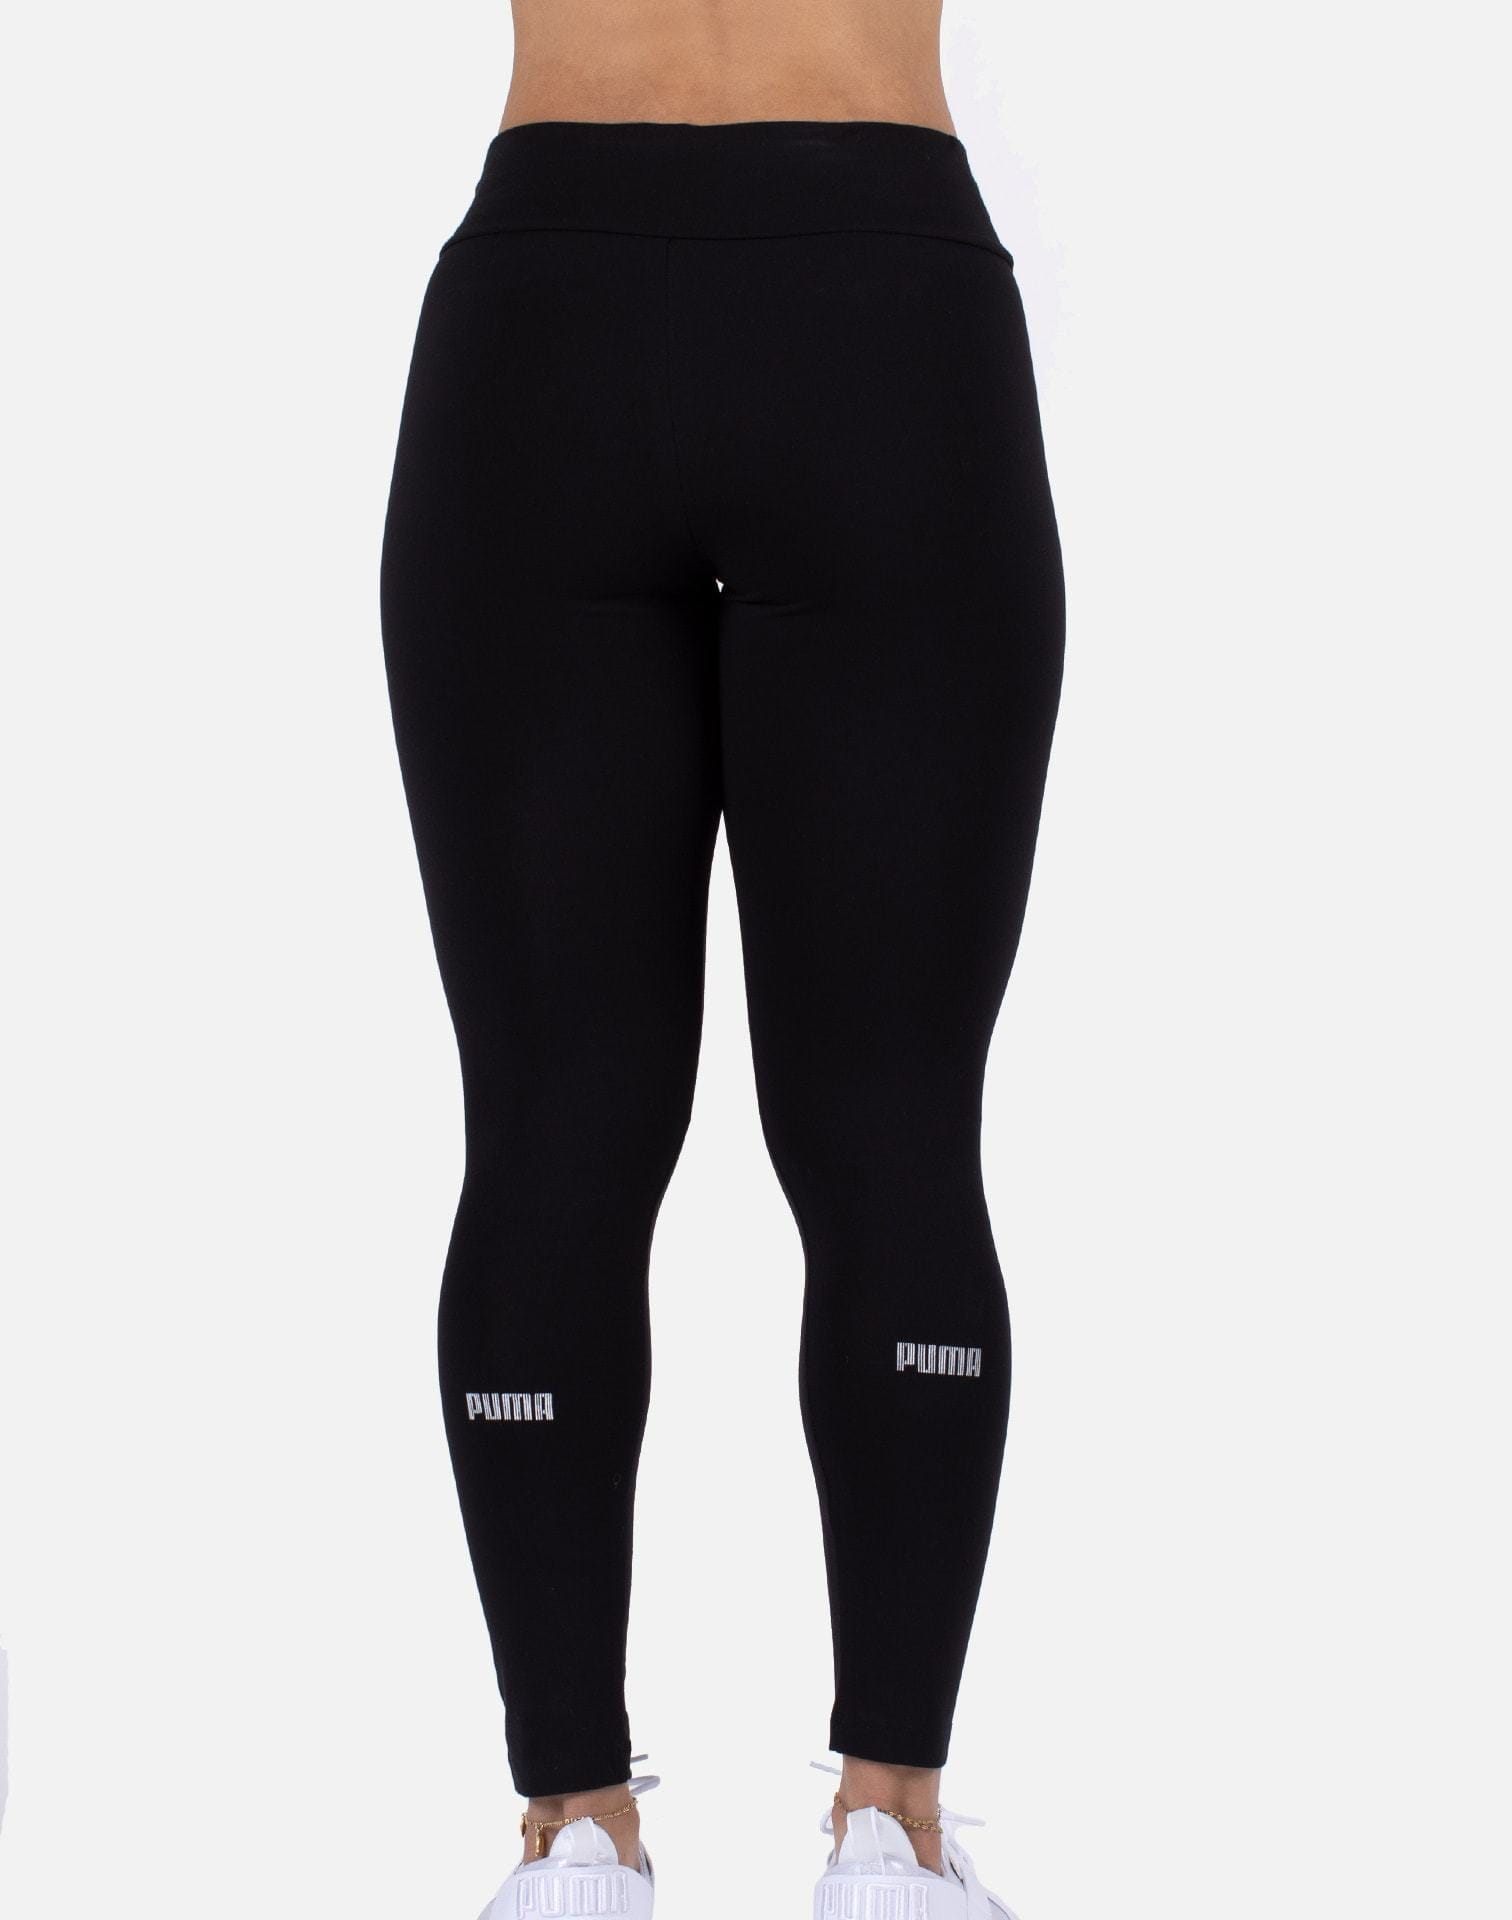 PUMA Women' Amplified Leggings